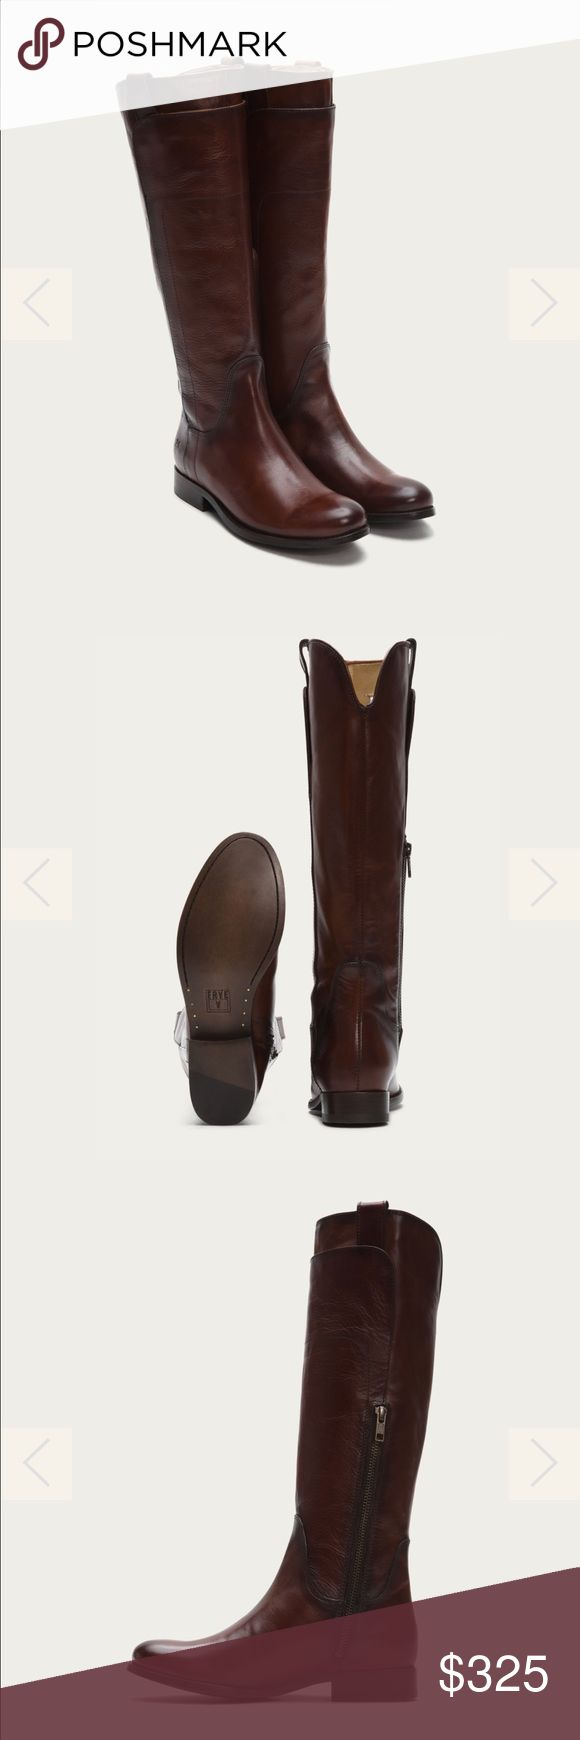 New in Box Frye Melissa Tall Leather Boots 7.5 New in Box Frye Melissa Tall Leather Boots 7.5 . Redwood color. No trades/no pp. Frye Shoes